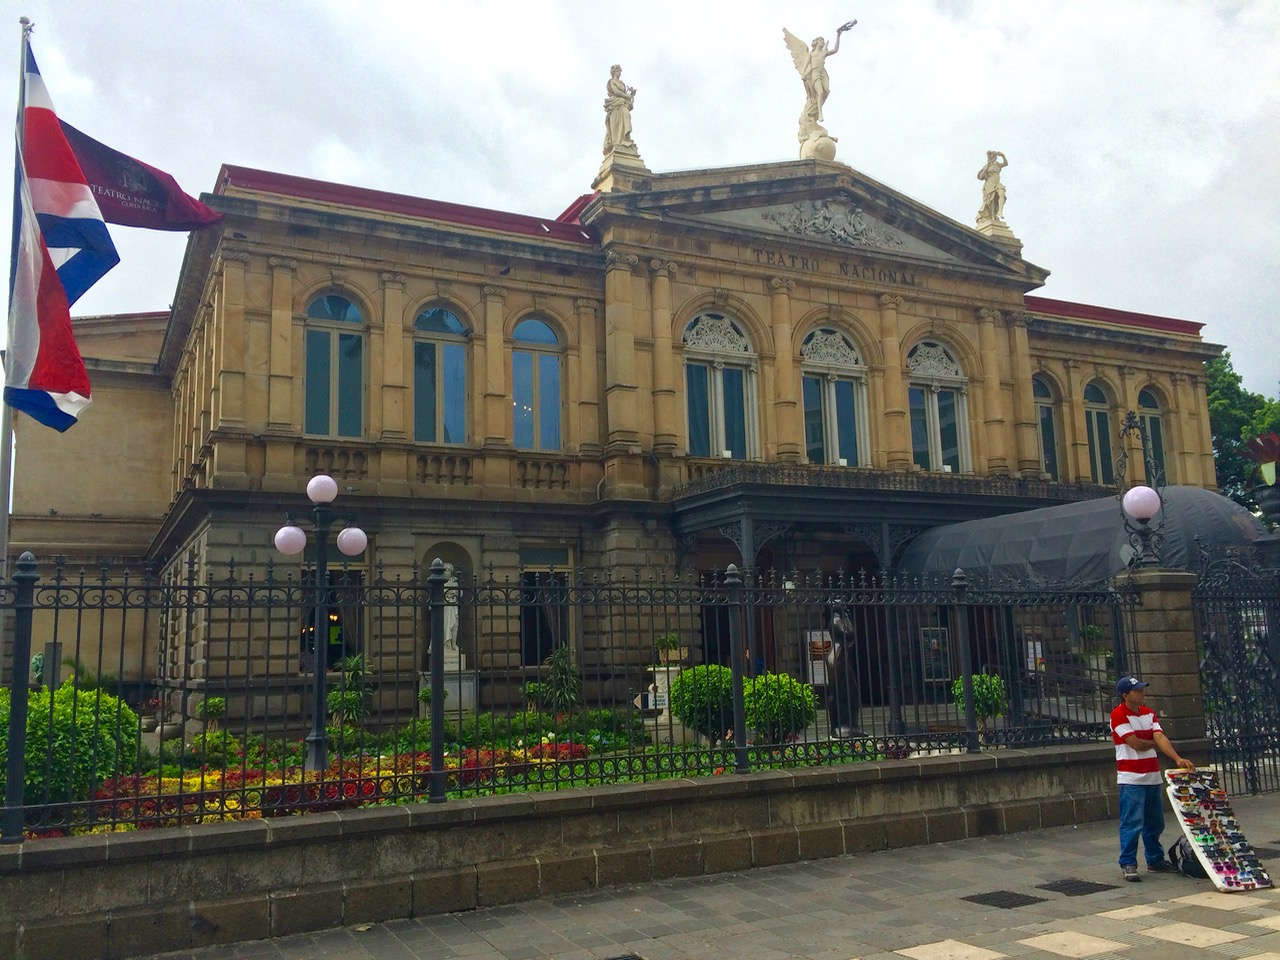 Teatro Nacional is a rare example of classical architecture of San Jose